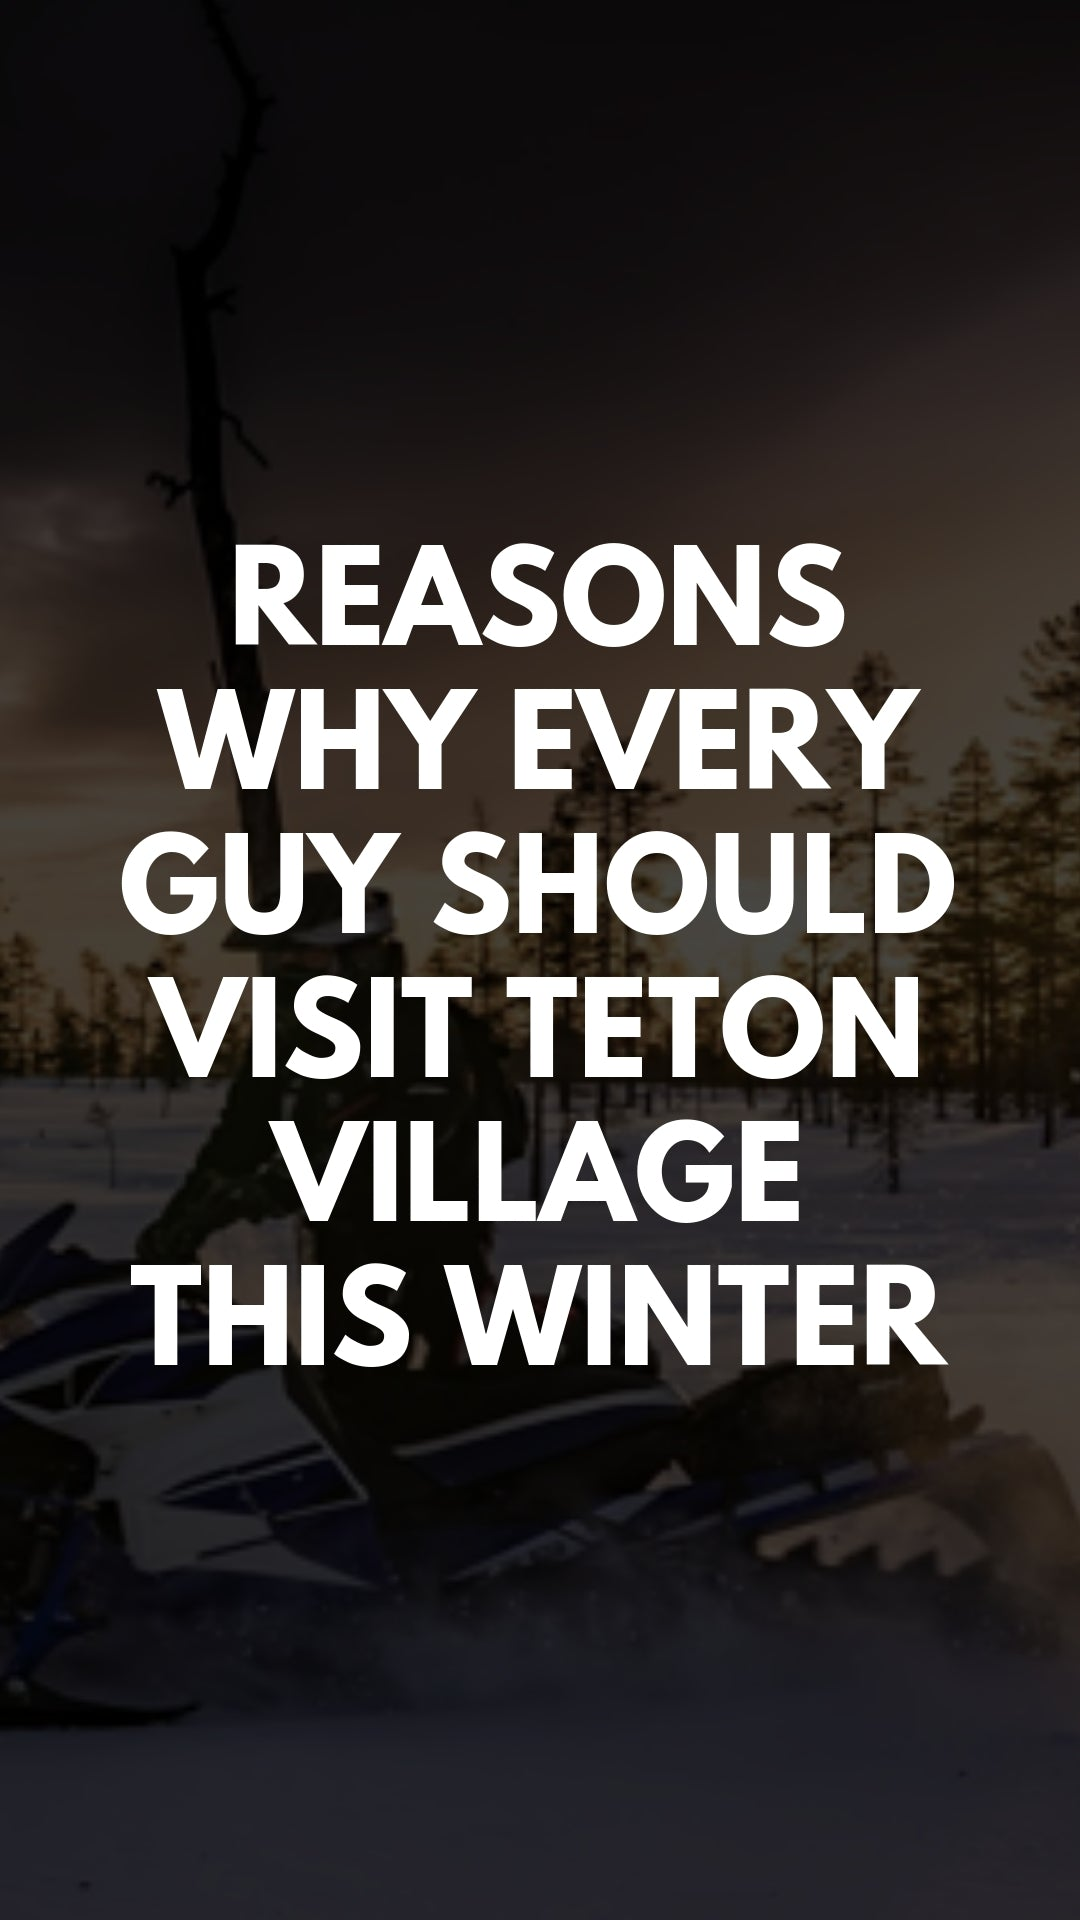 Reasons Why Every Guy Should Visit Teton Village This Winter #travel #skiing